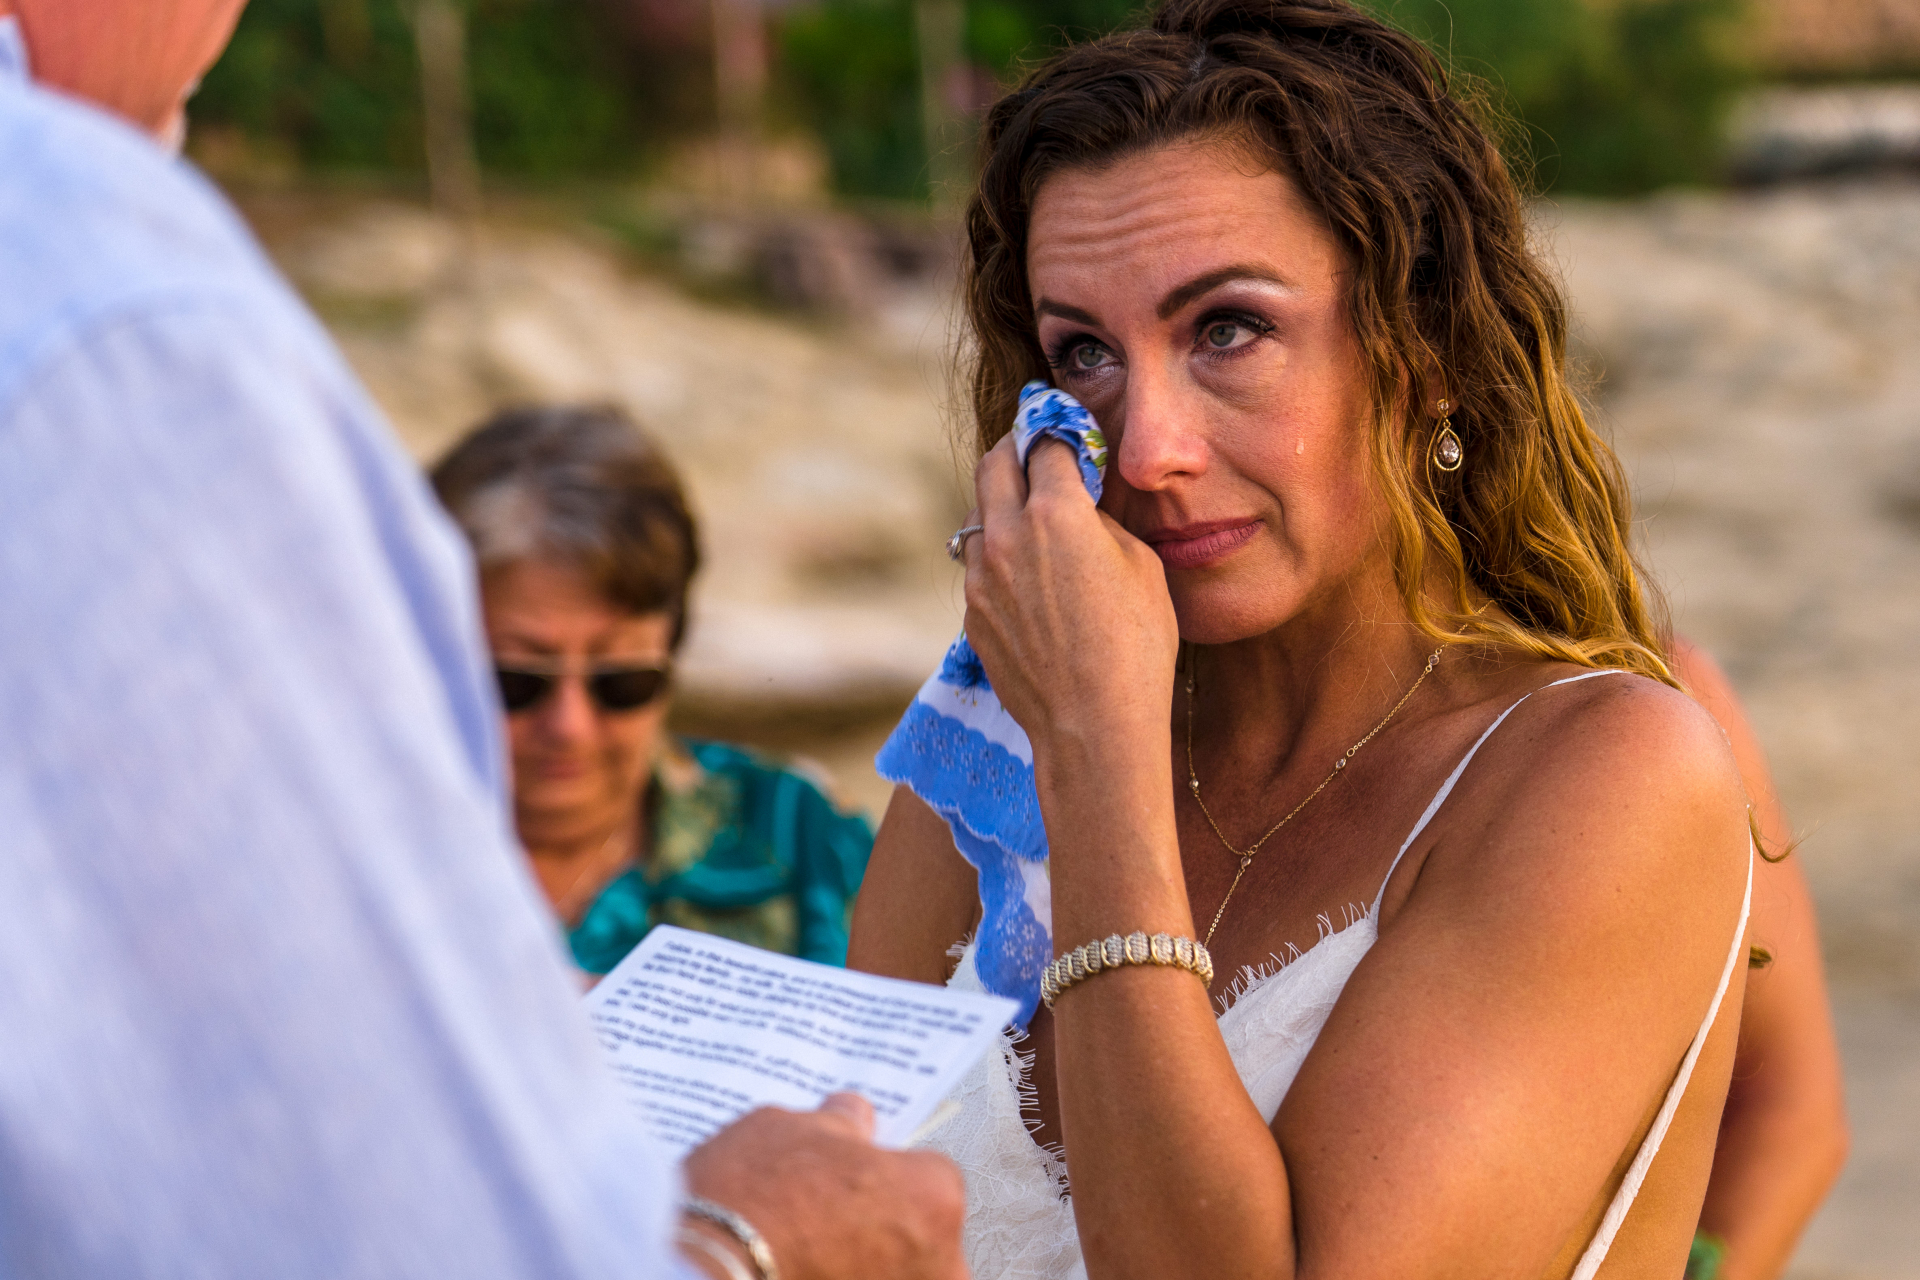 Puerto Vallarta Beach Ceremony Elopement Tear Picture | The bride can't help but tear up as she listens to the groom's vows